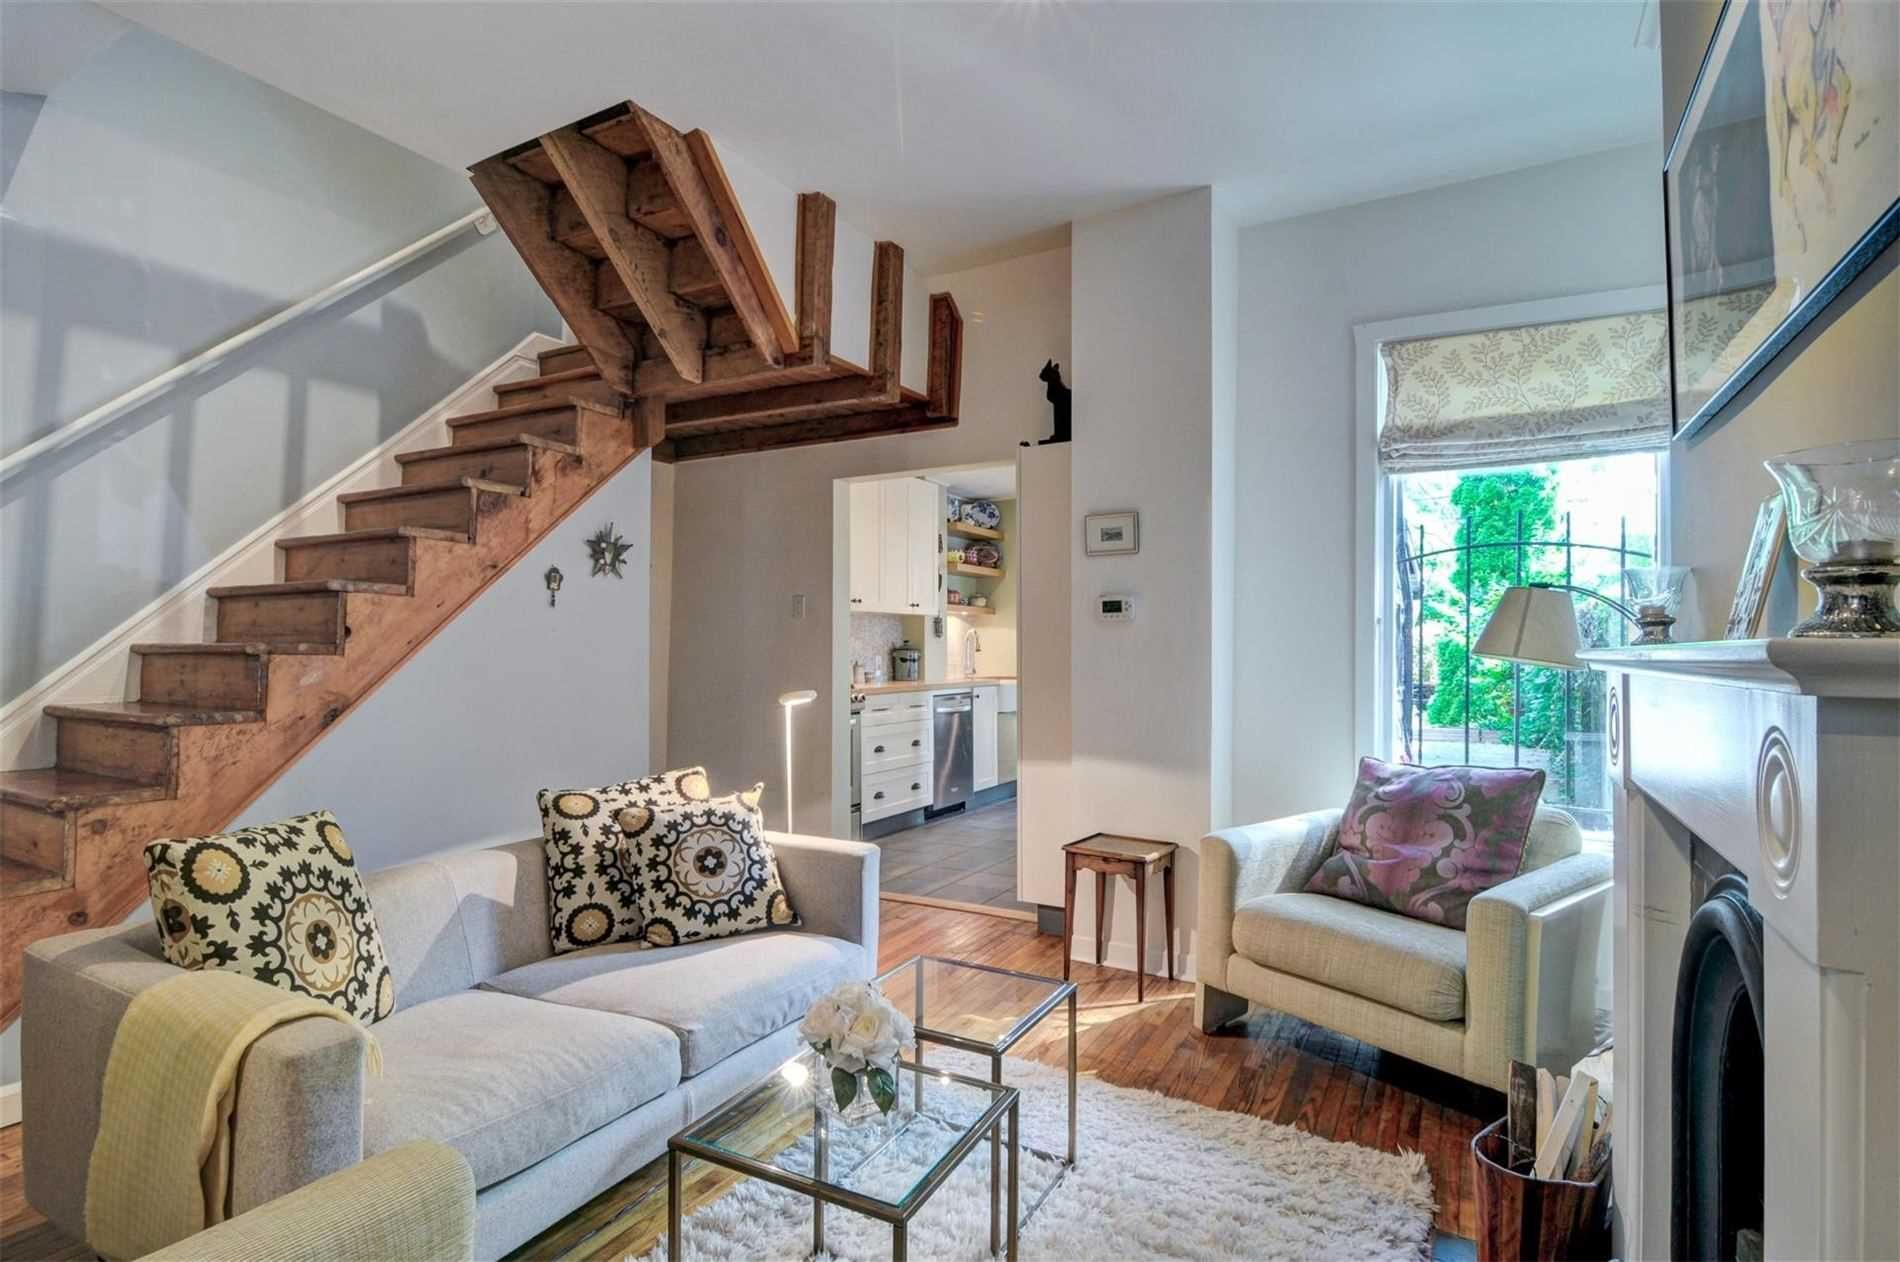 Main Photo: 145 Spruce Street in Toronto: Cabbagetown-South St. James Town House (2-Storey) for sale (Toronto C08)  : MLS®# C4589051